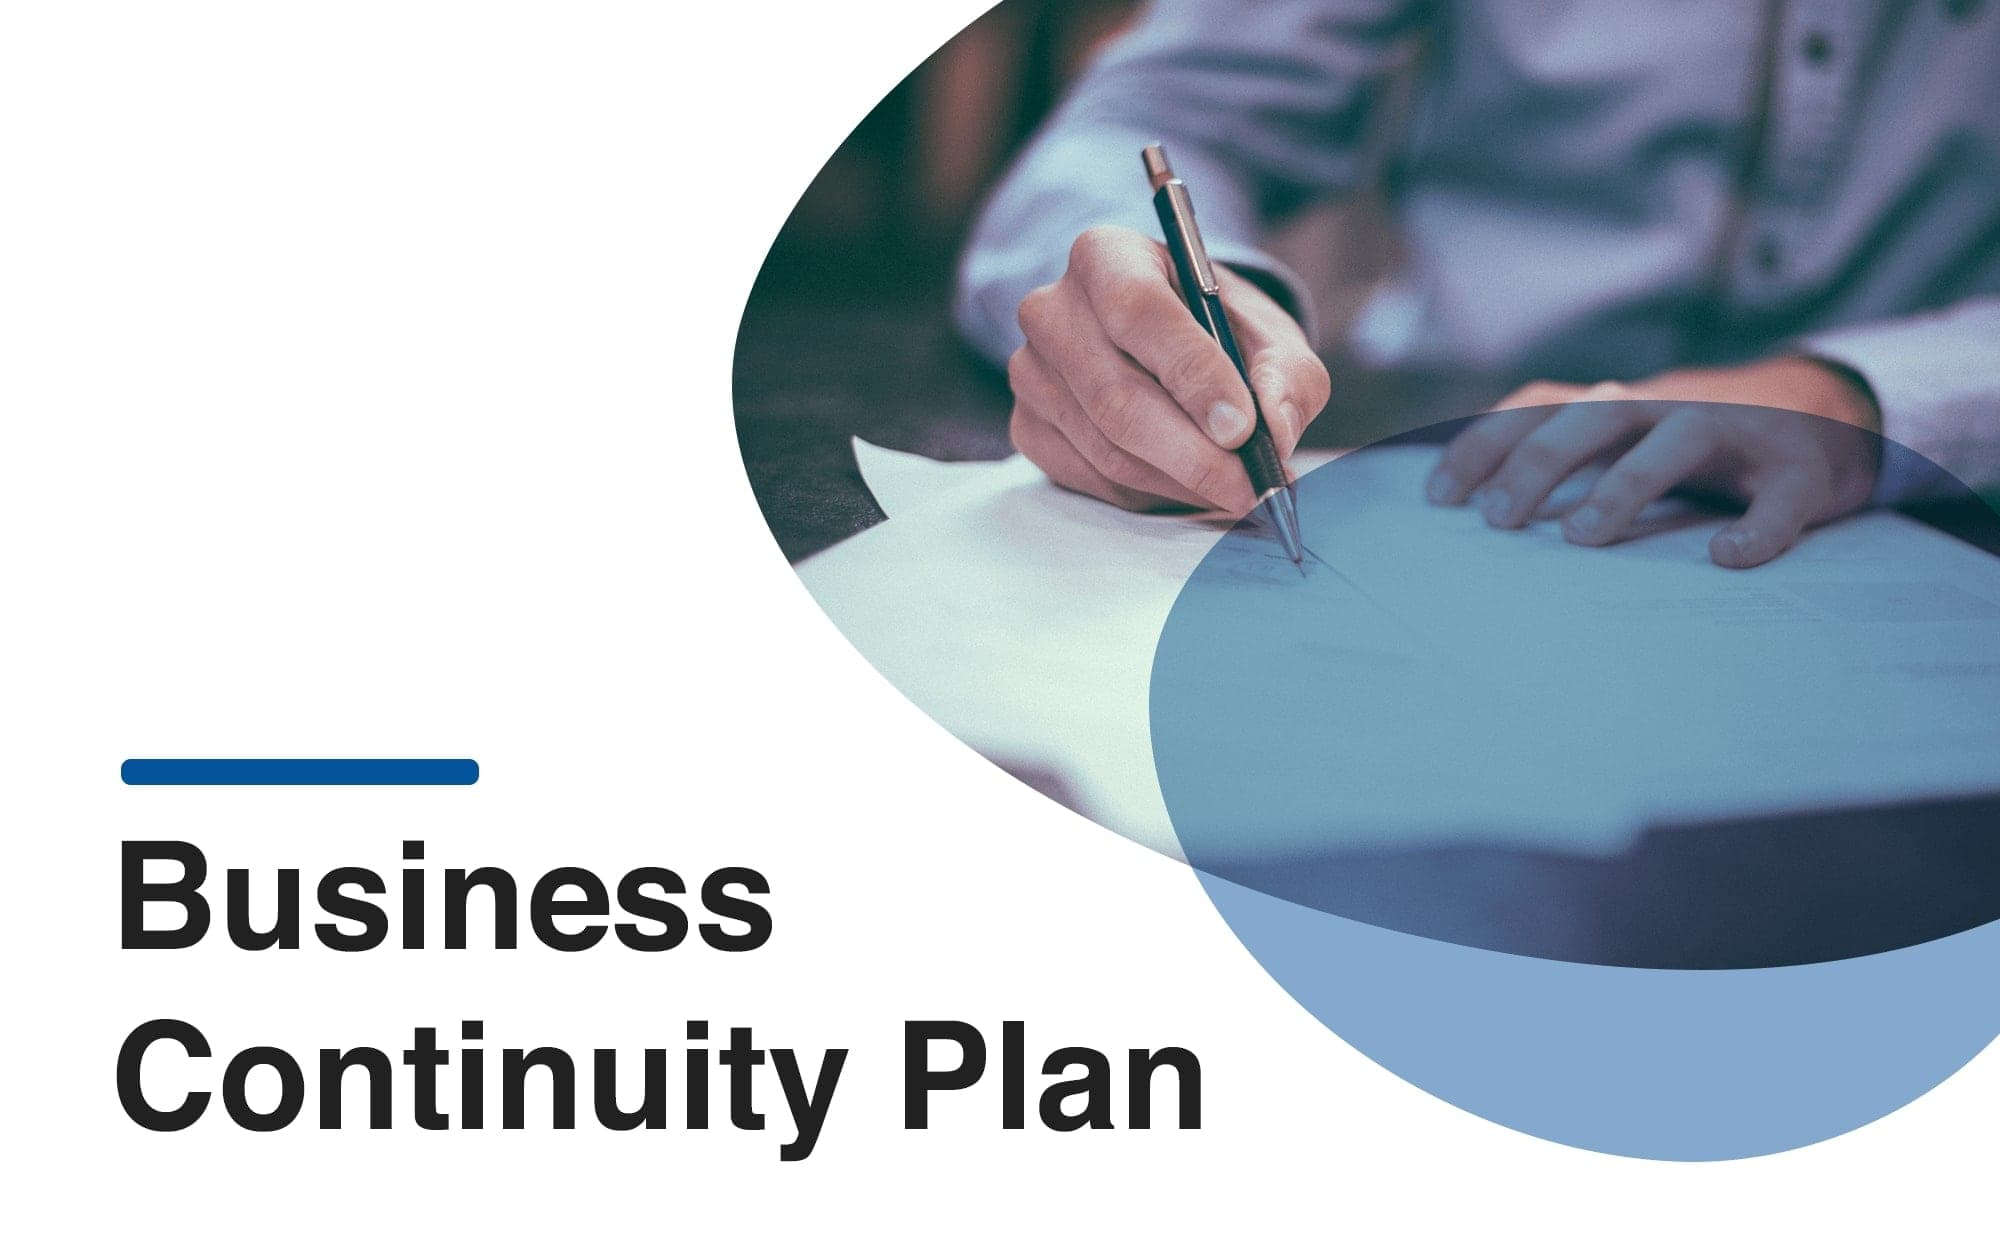 Business continuity plan template cover in a computer